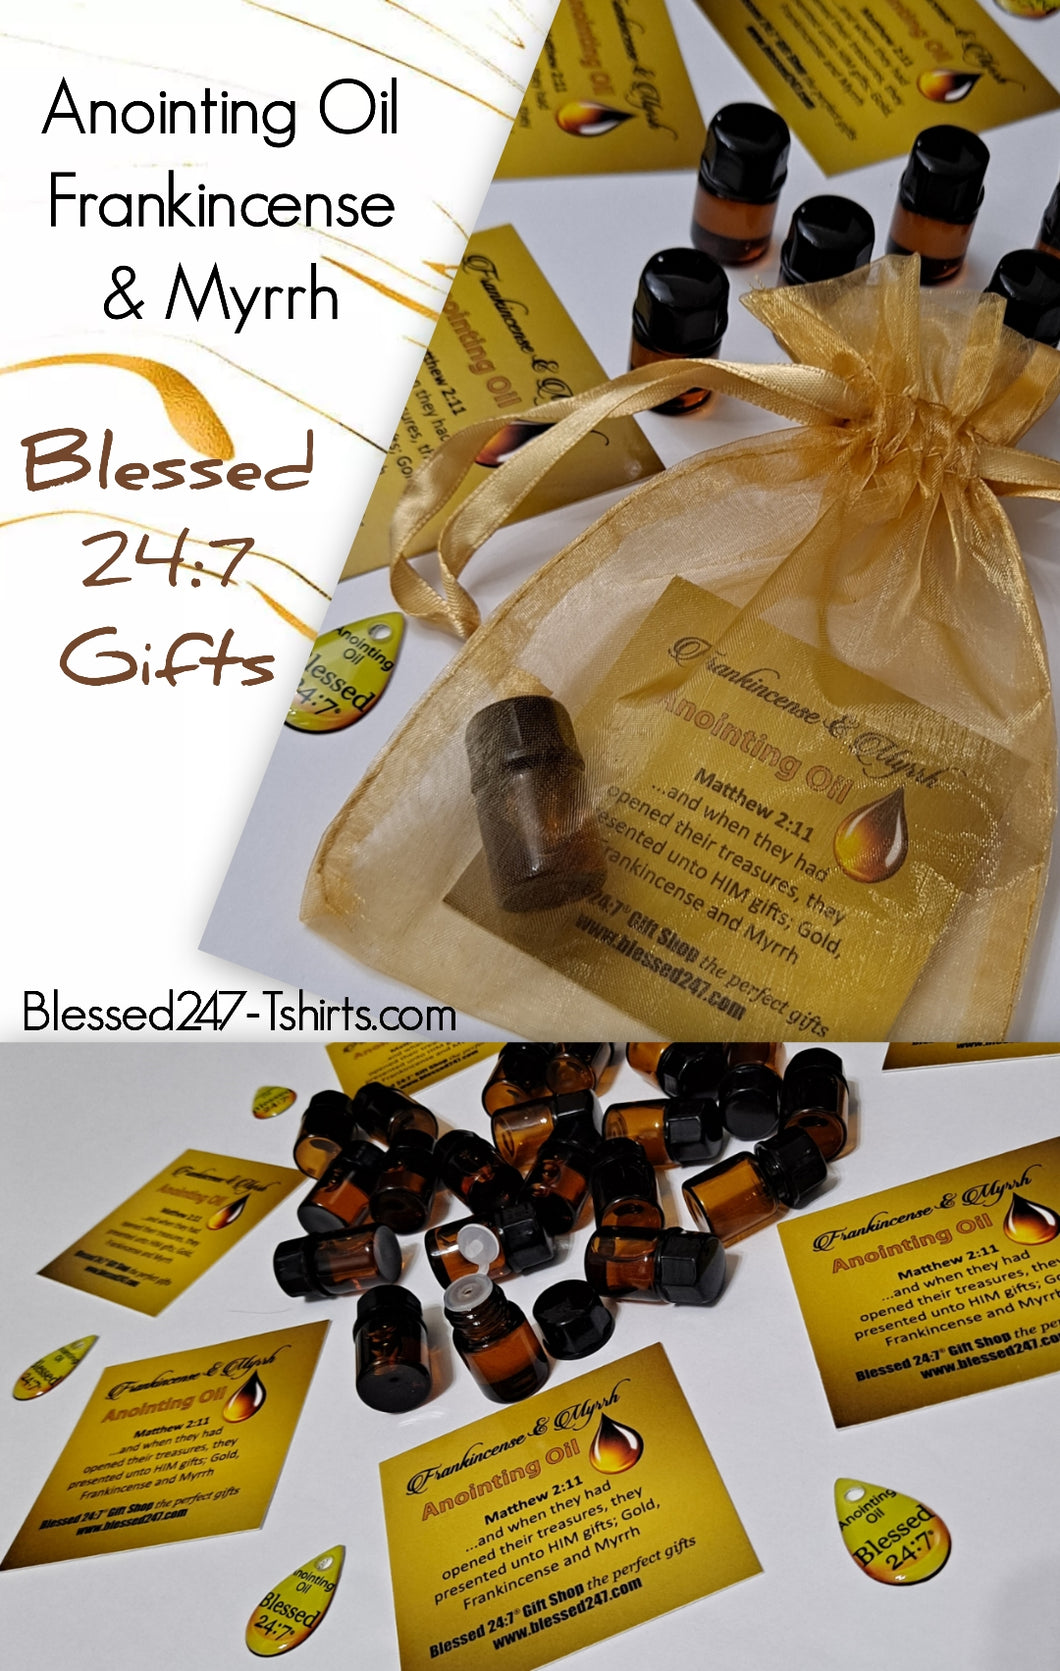 Anointing Oil Frankincense & Myrrh